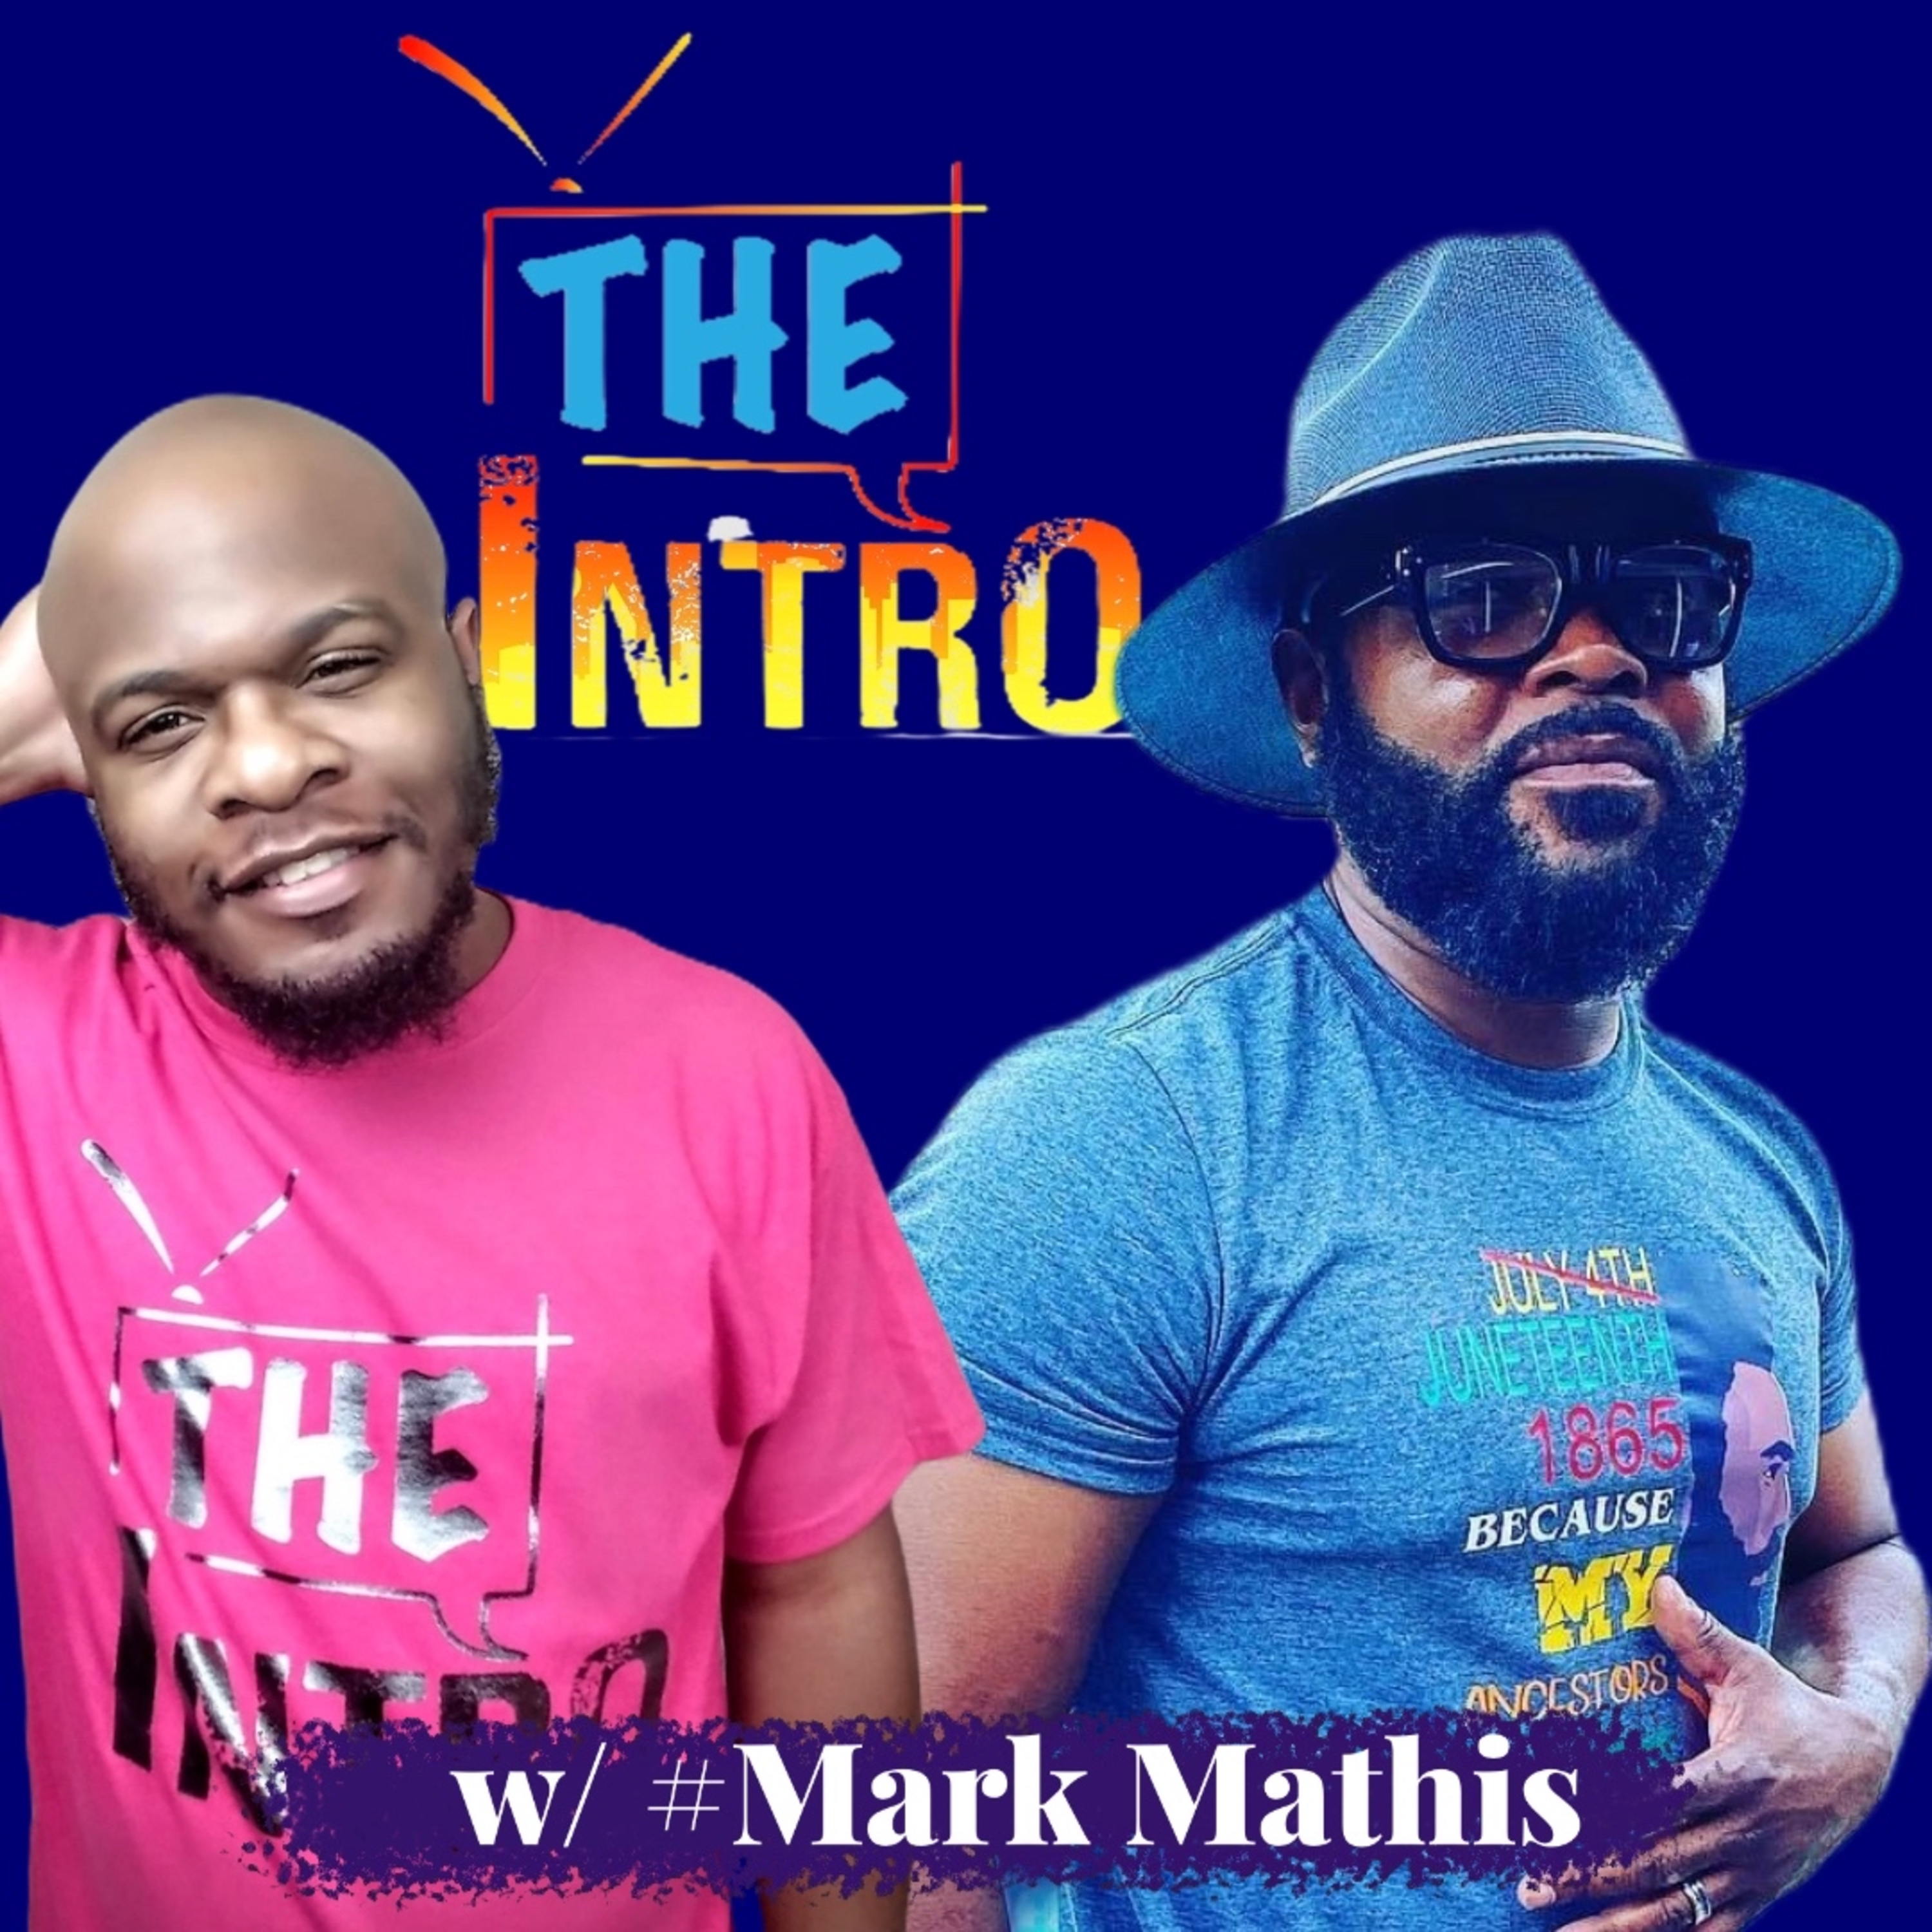 Show 13: 50 has mastered it! Conversation with recording artist Mark Mathis.